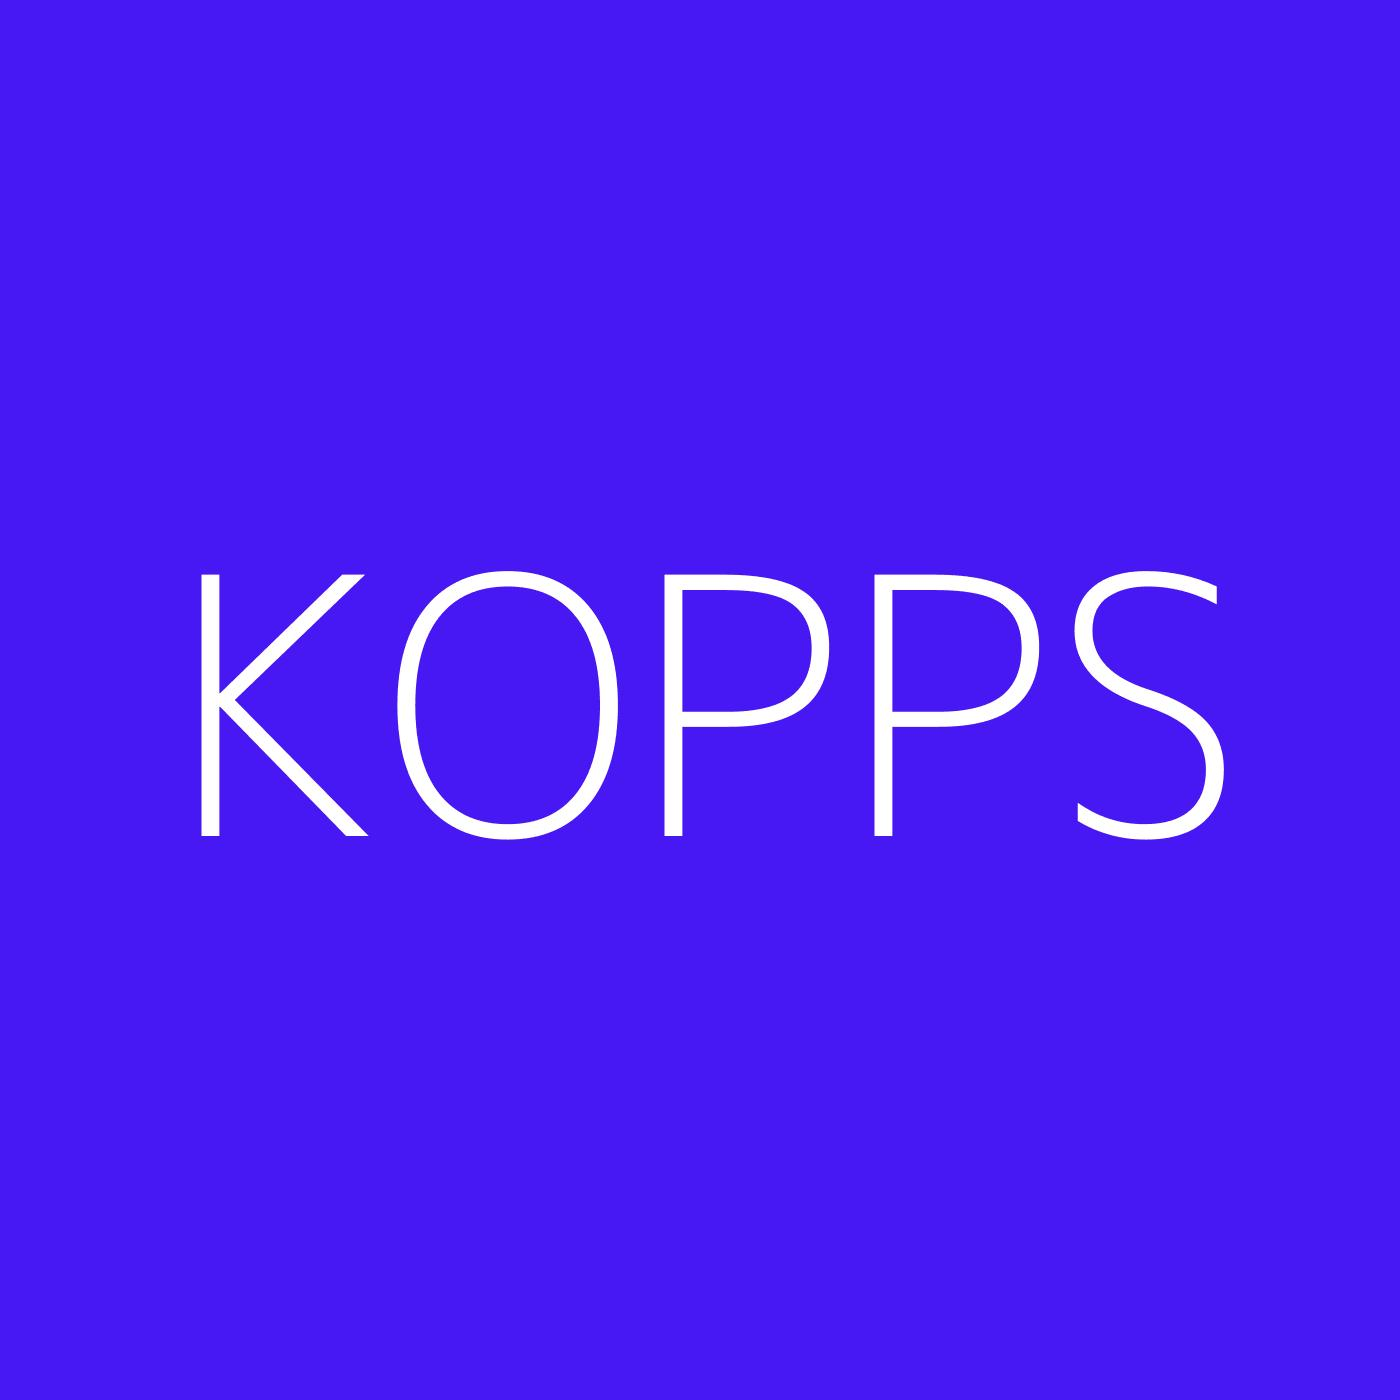 KOPPS Playlist Artwork